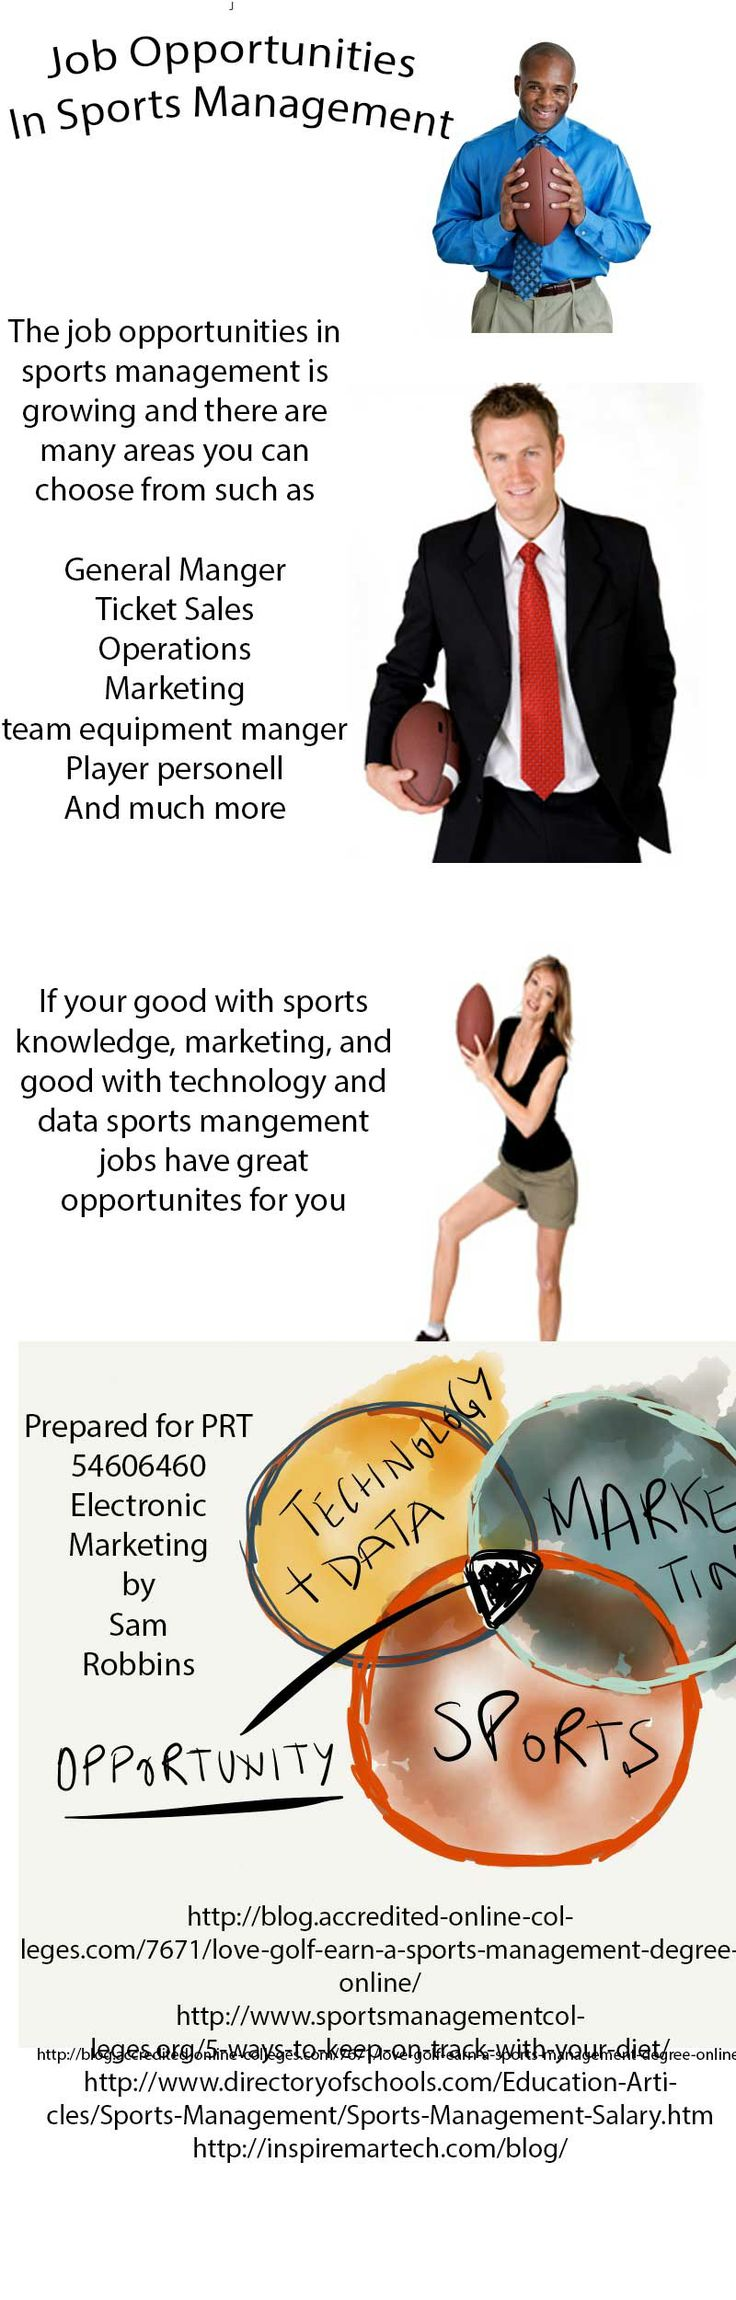 sports management jobs challenges of sports management jobs sports ...